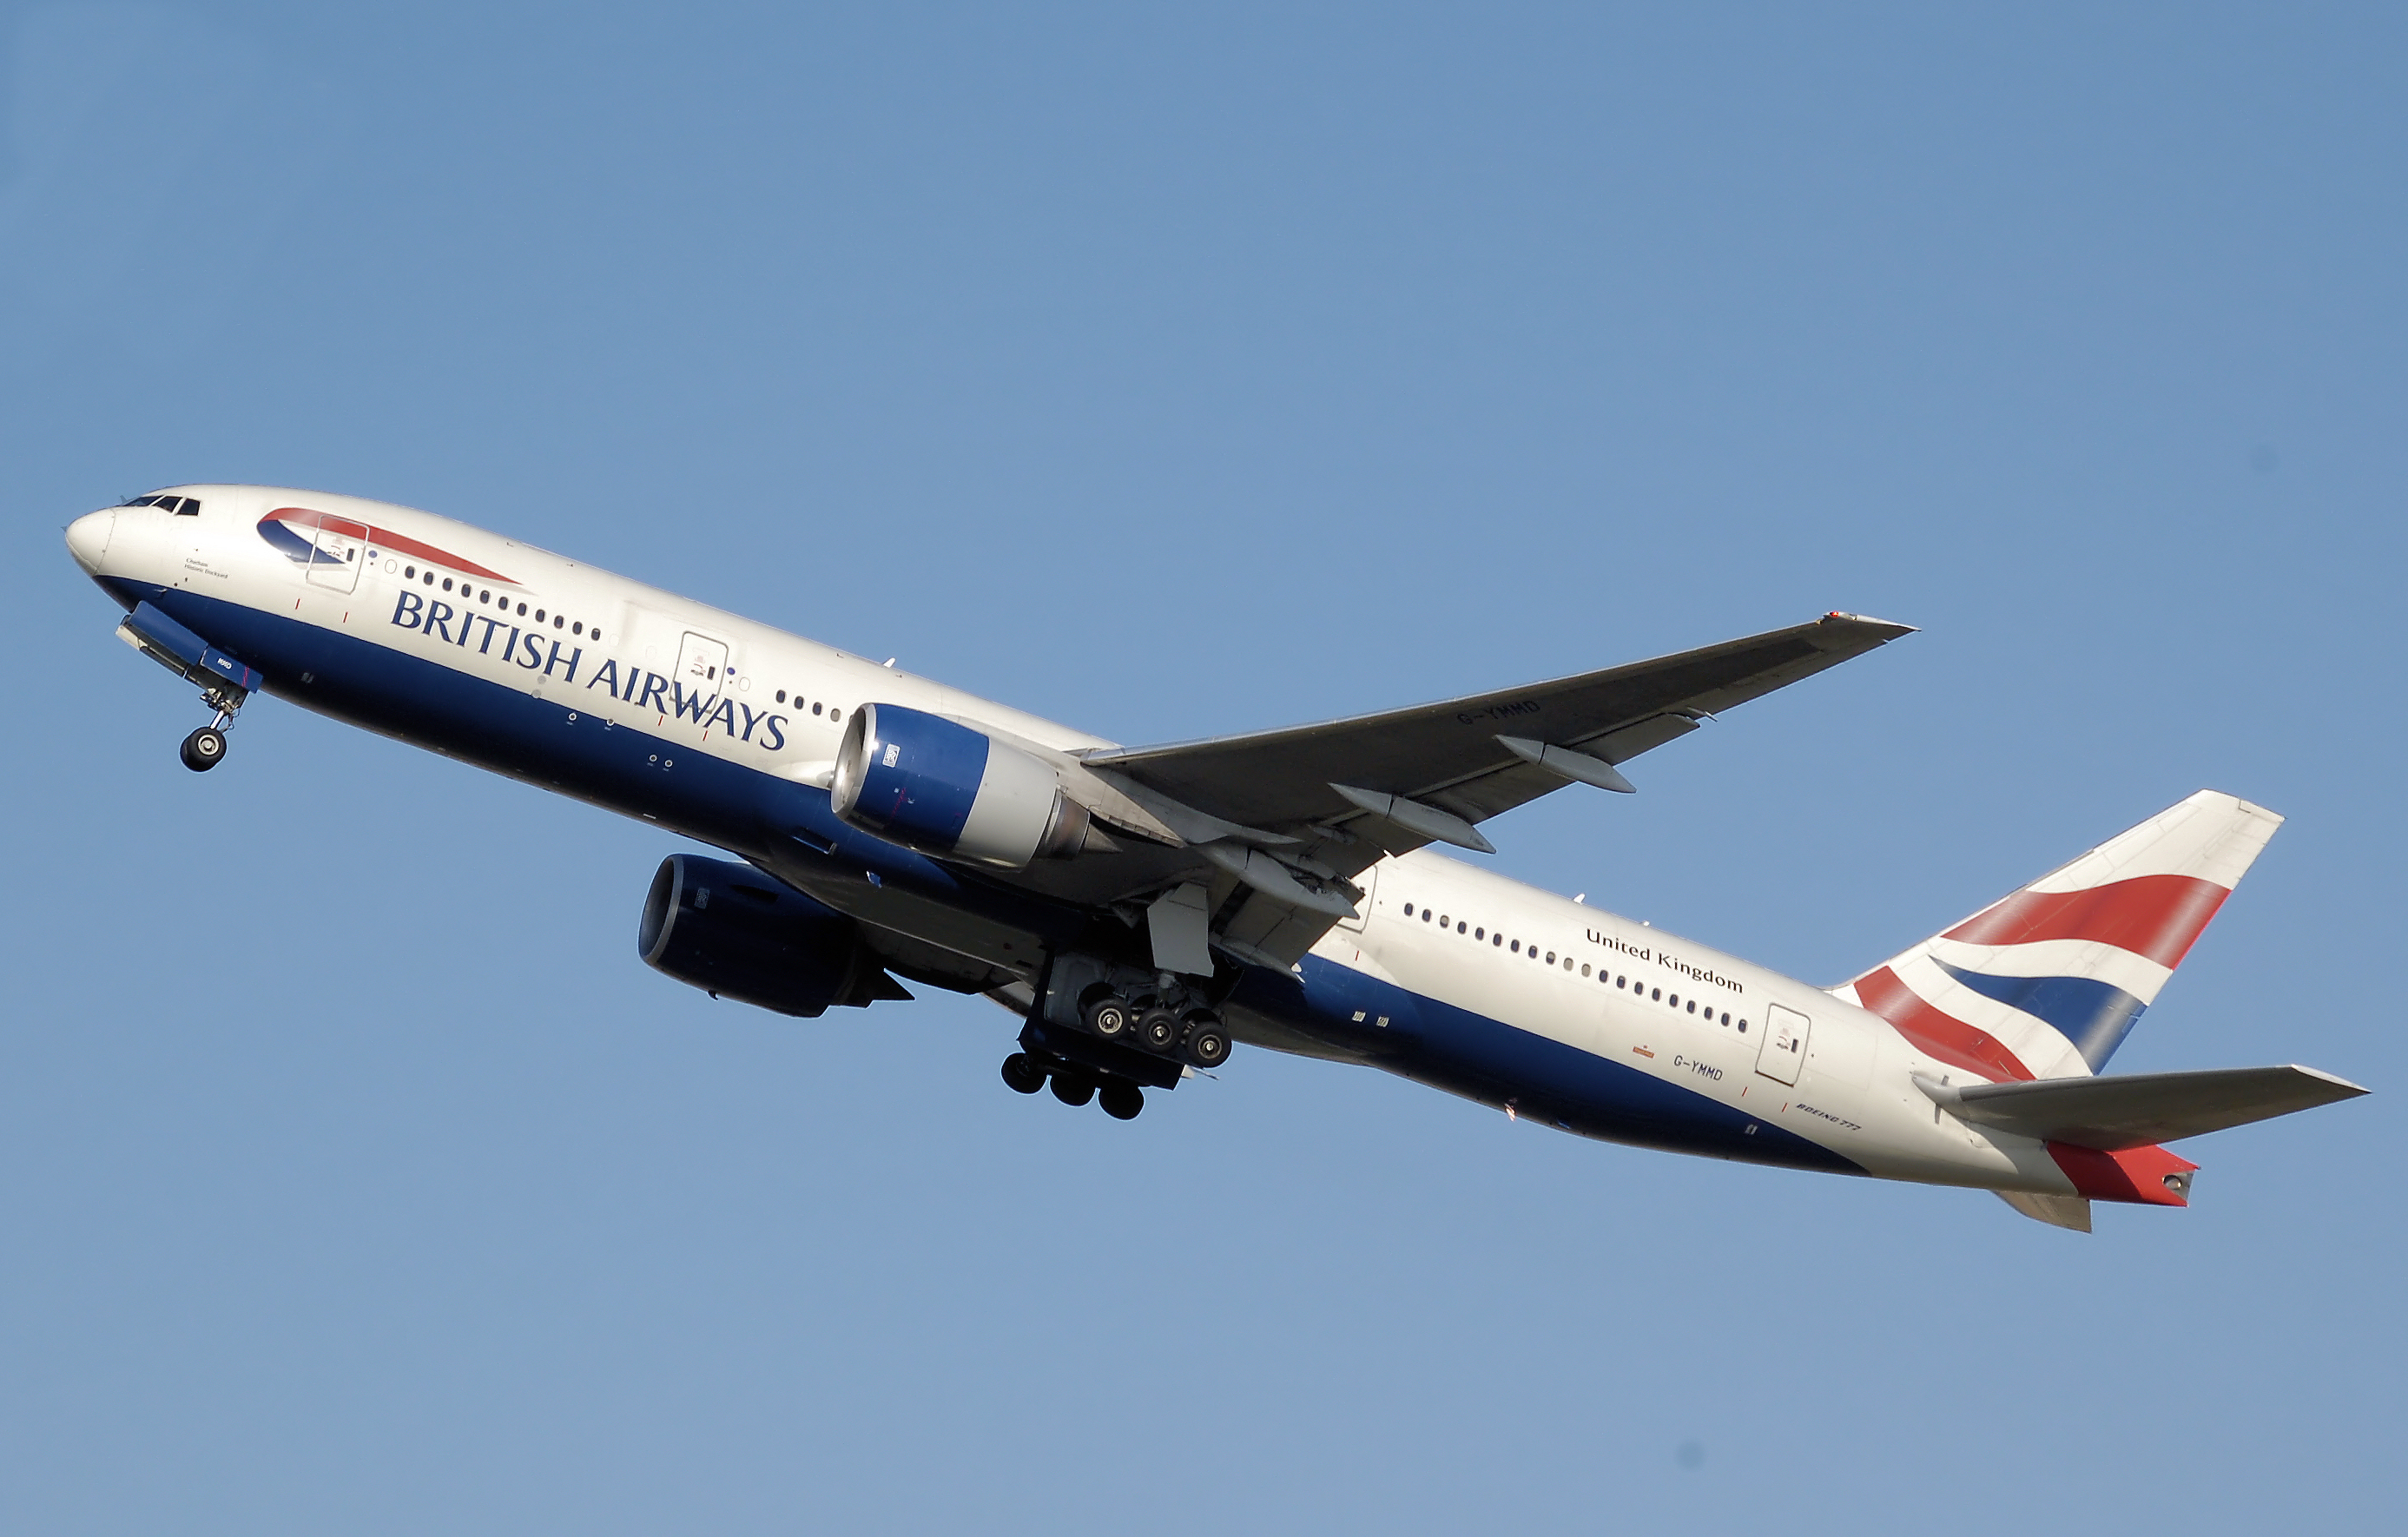 BA is set to acquire BMI